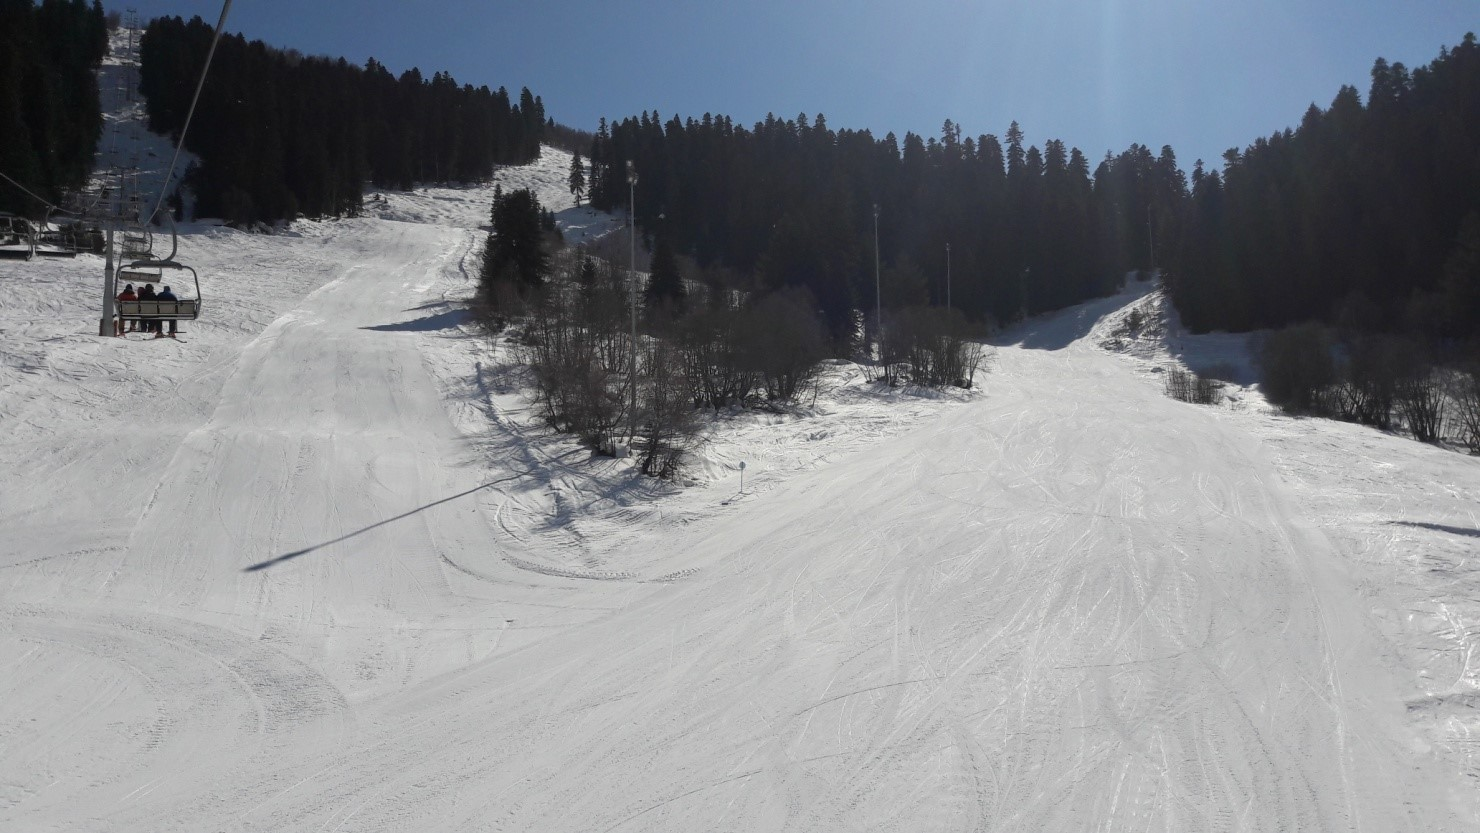 Acclimatization and warm up day at Hatsvali resort